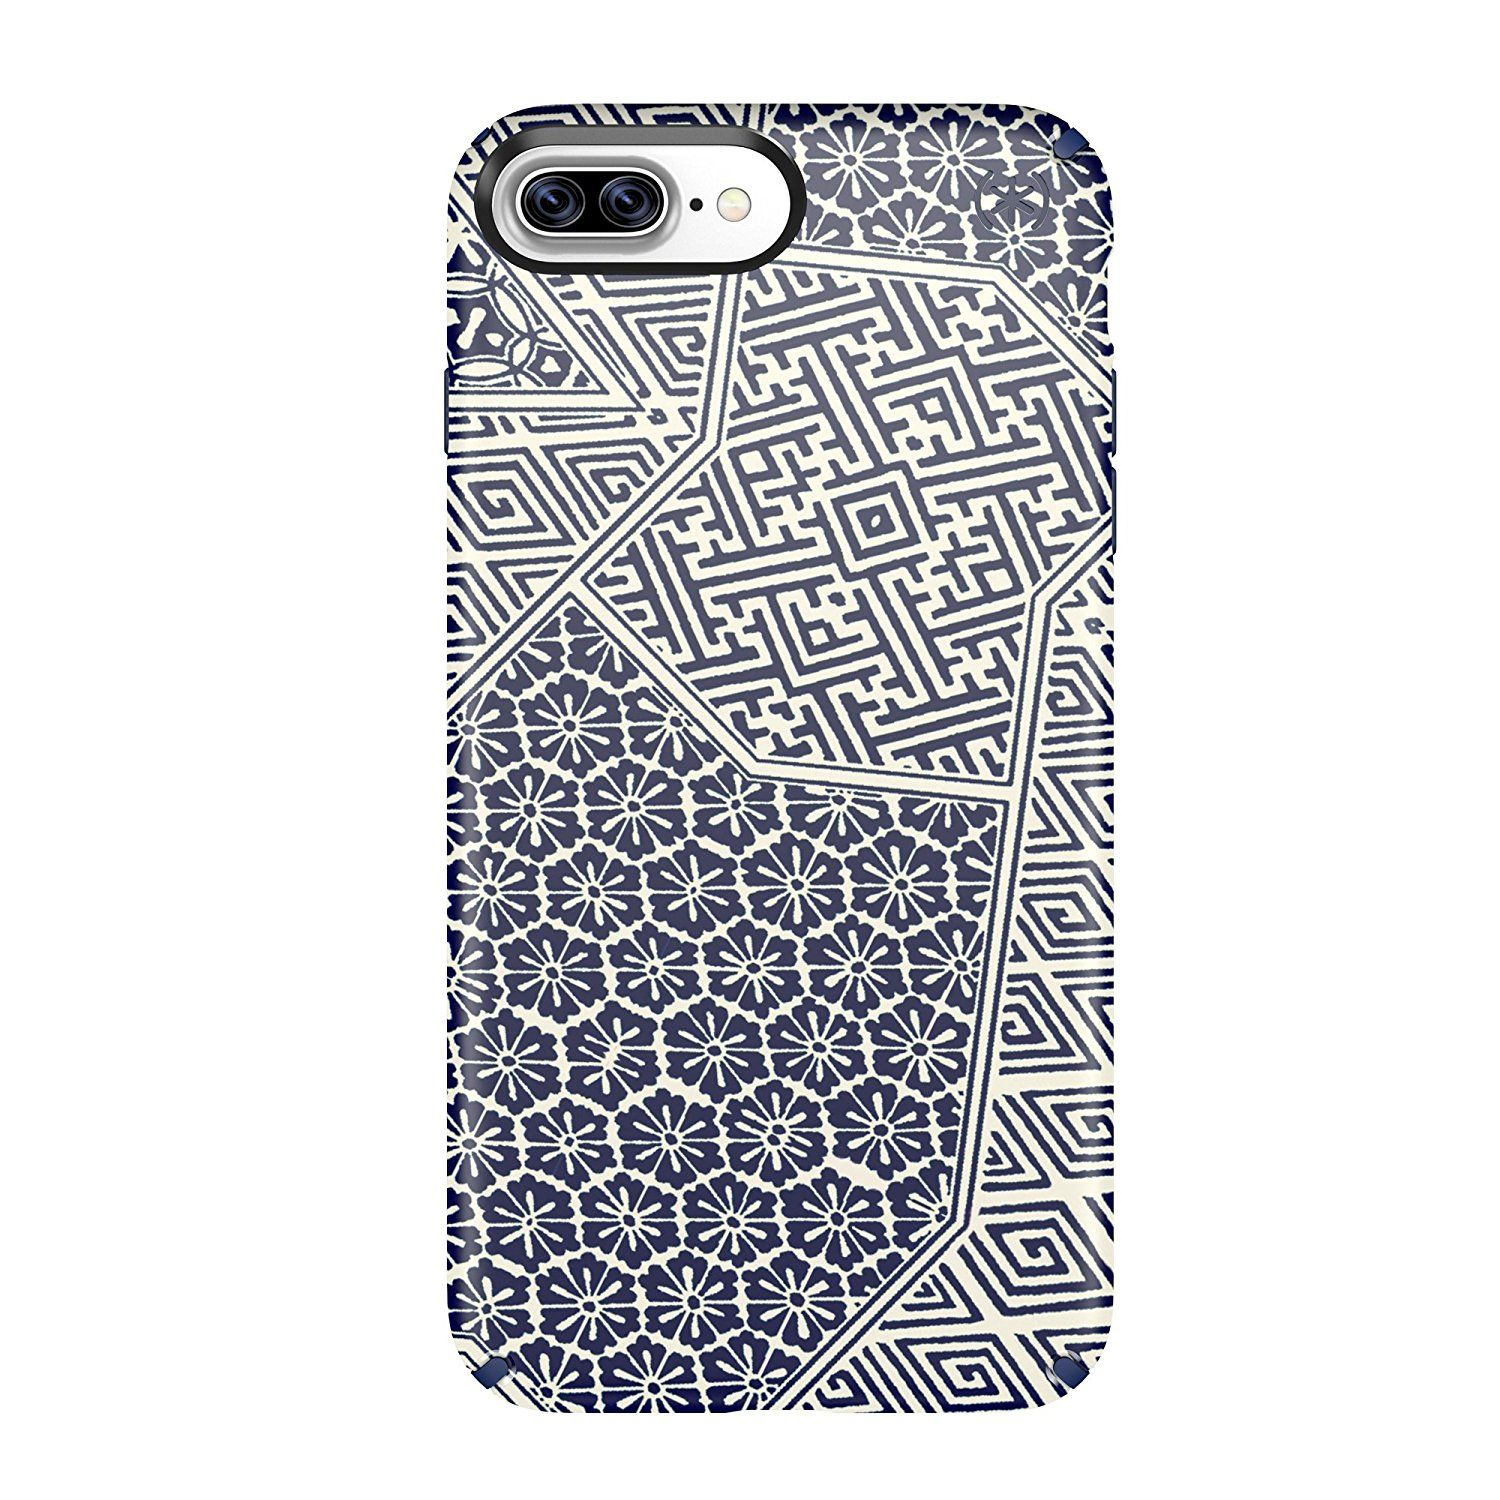 finest selection 0906d dc453 Speck Products Presidio Inked Cell Phone Case for iPhone 7 Plus ...